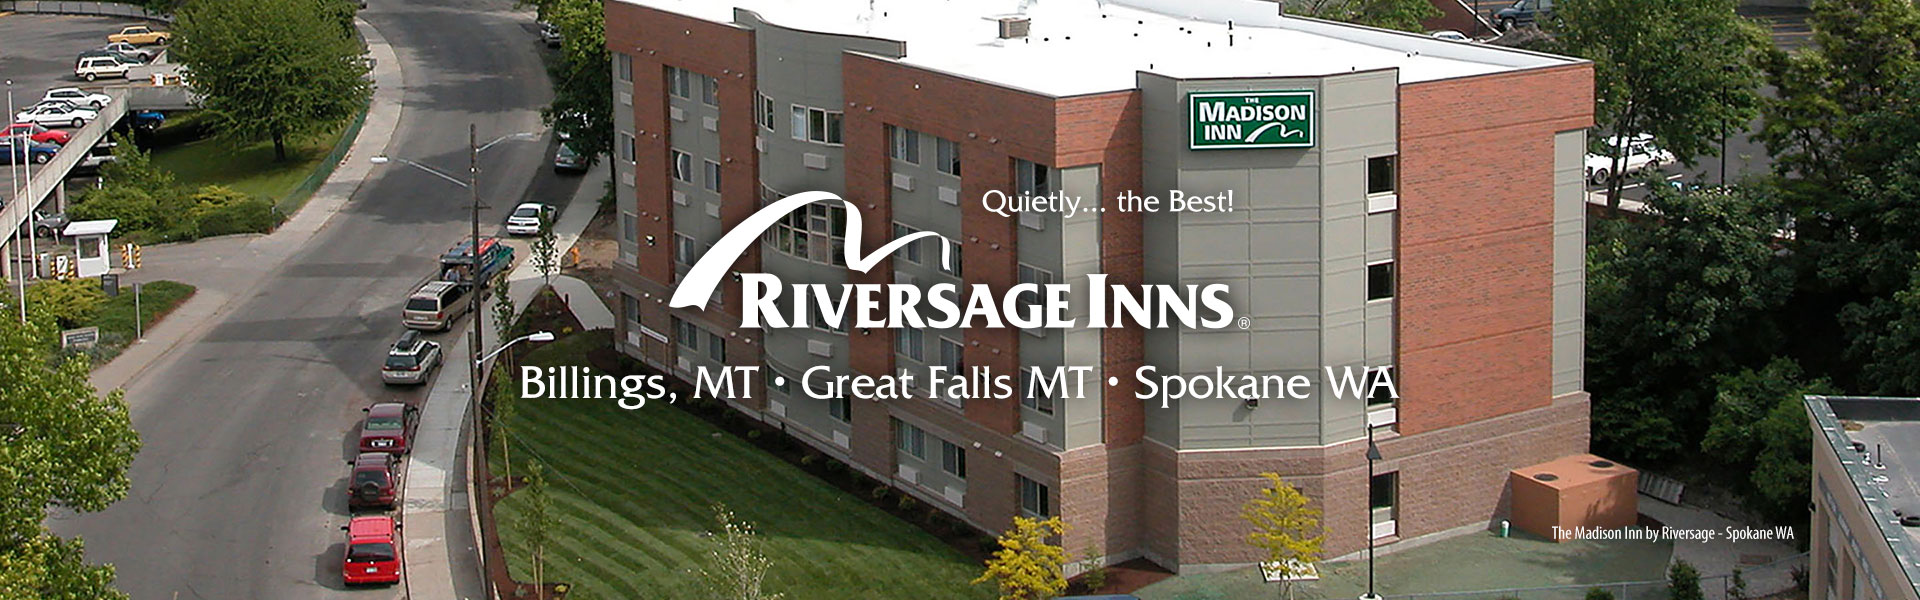 Riversage Inns - Quality, Affordable Lodging - Billings MT, Great Falls MT and Spokane WA